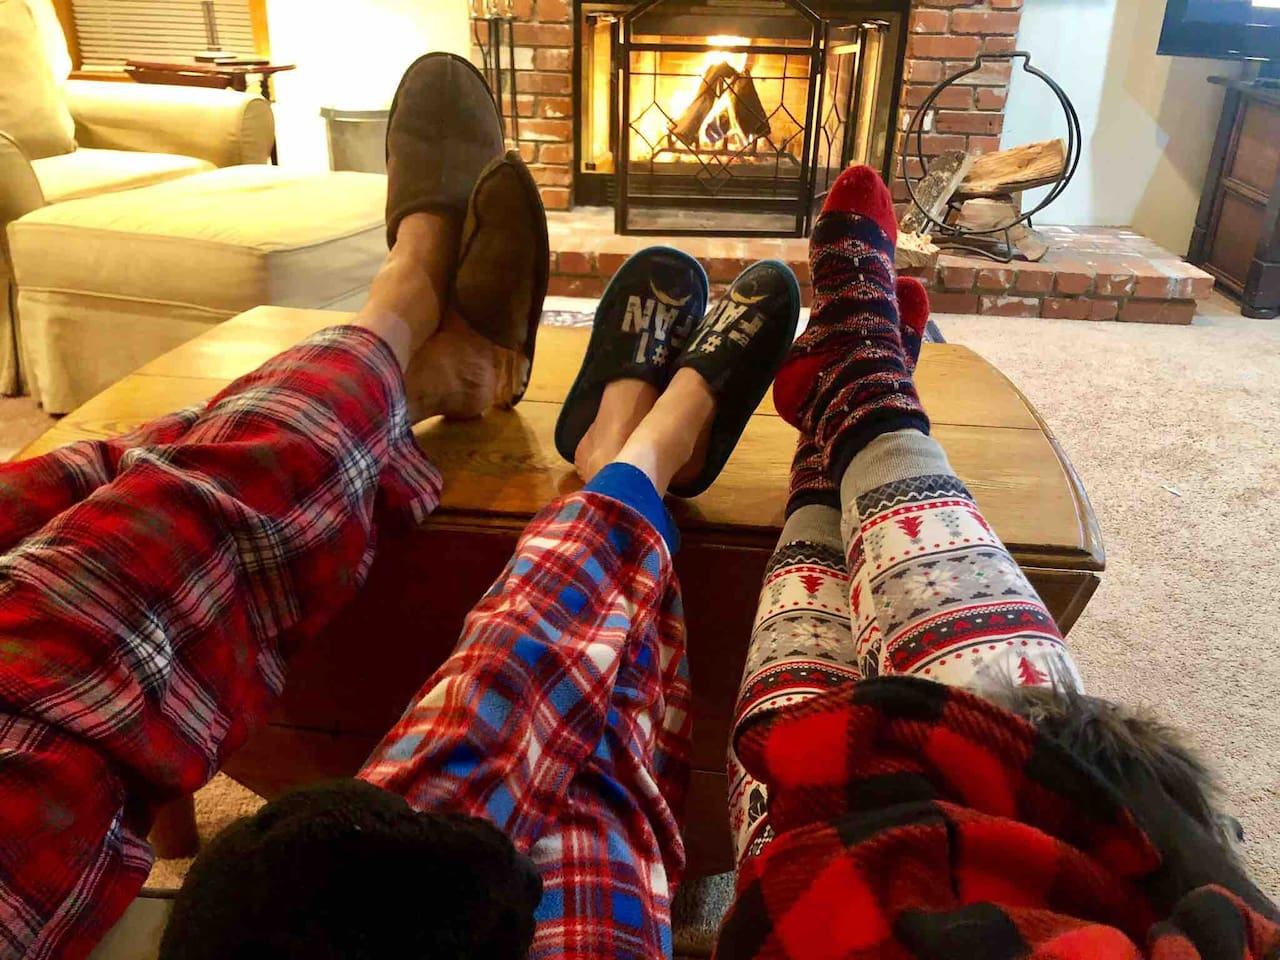 Toast your toes by the gas start wood burning fireplace after a day of hiking, zip lining, or skiing.